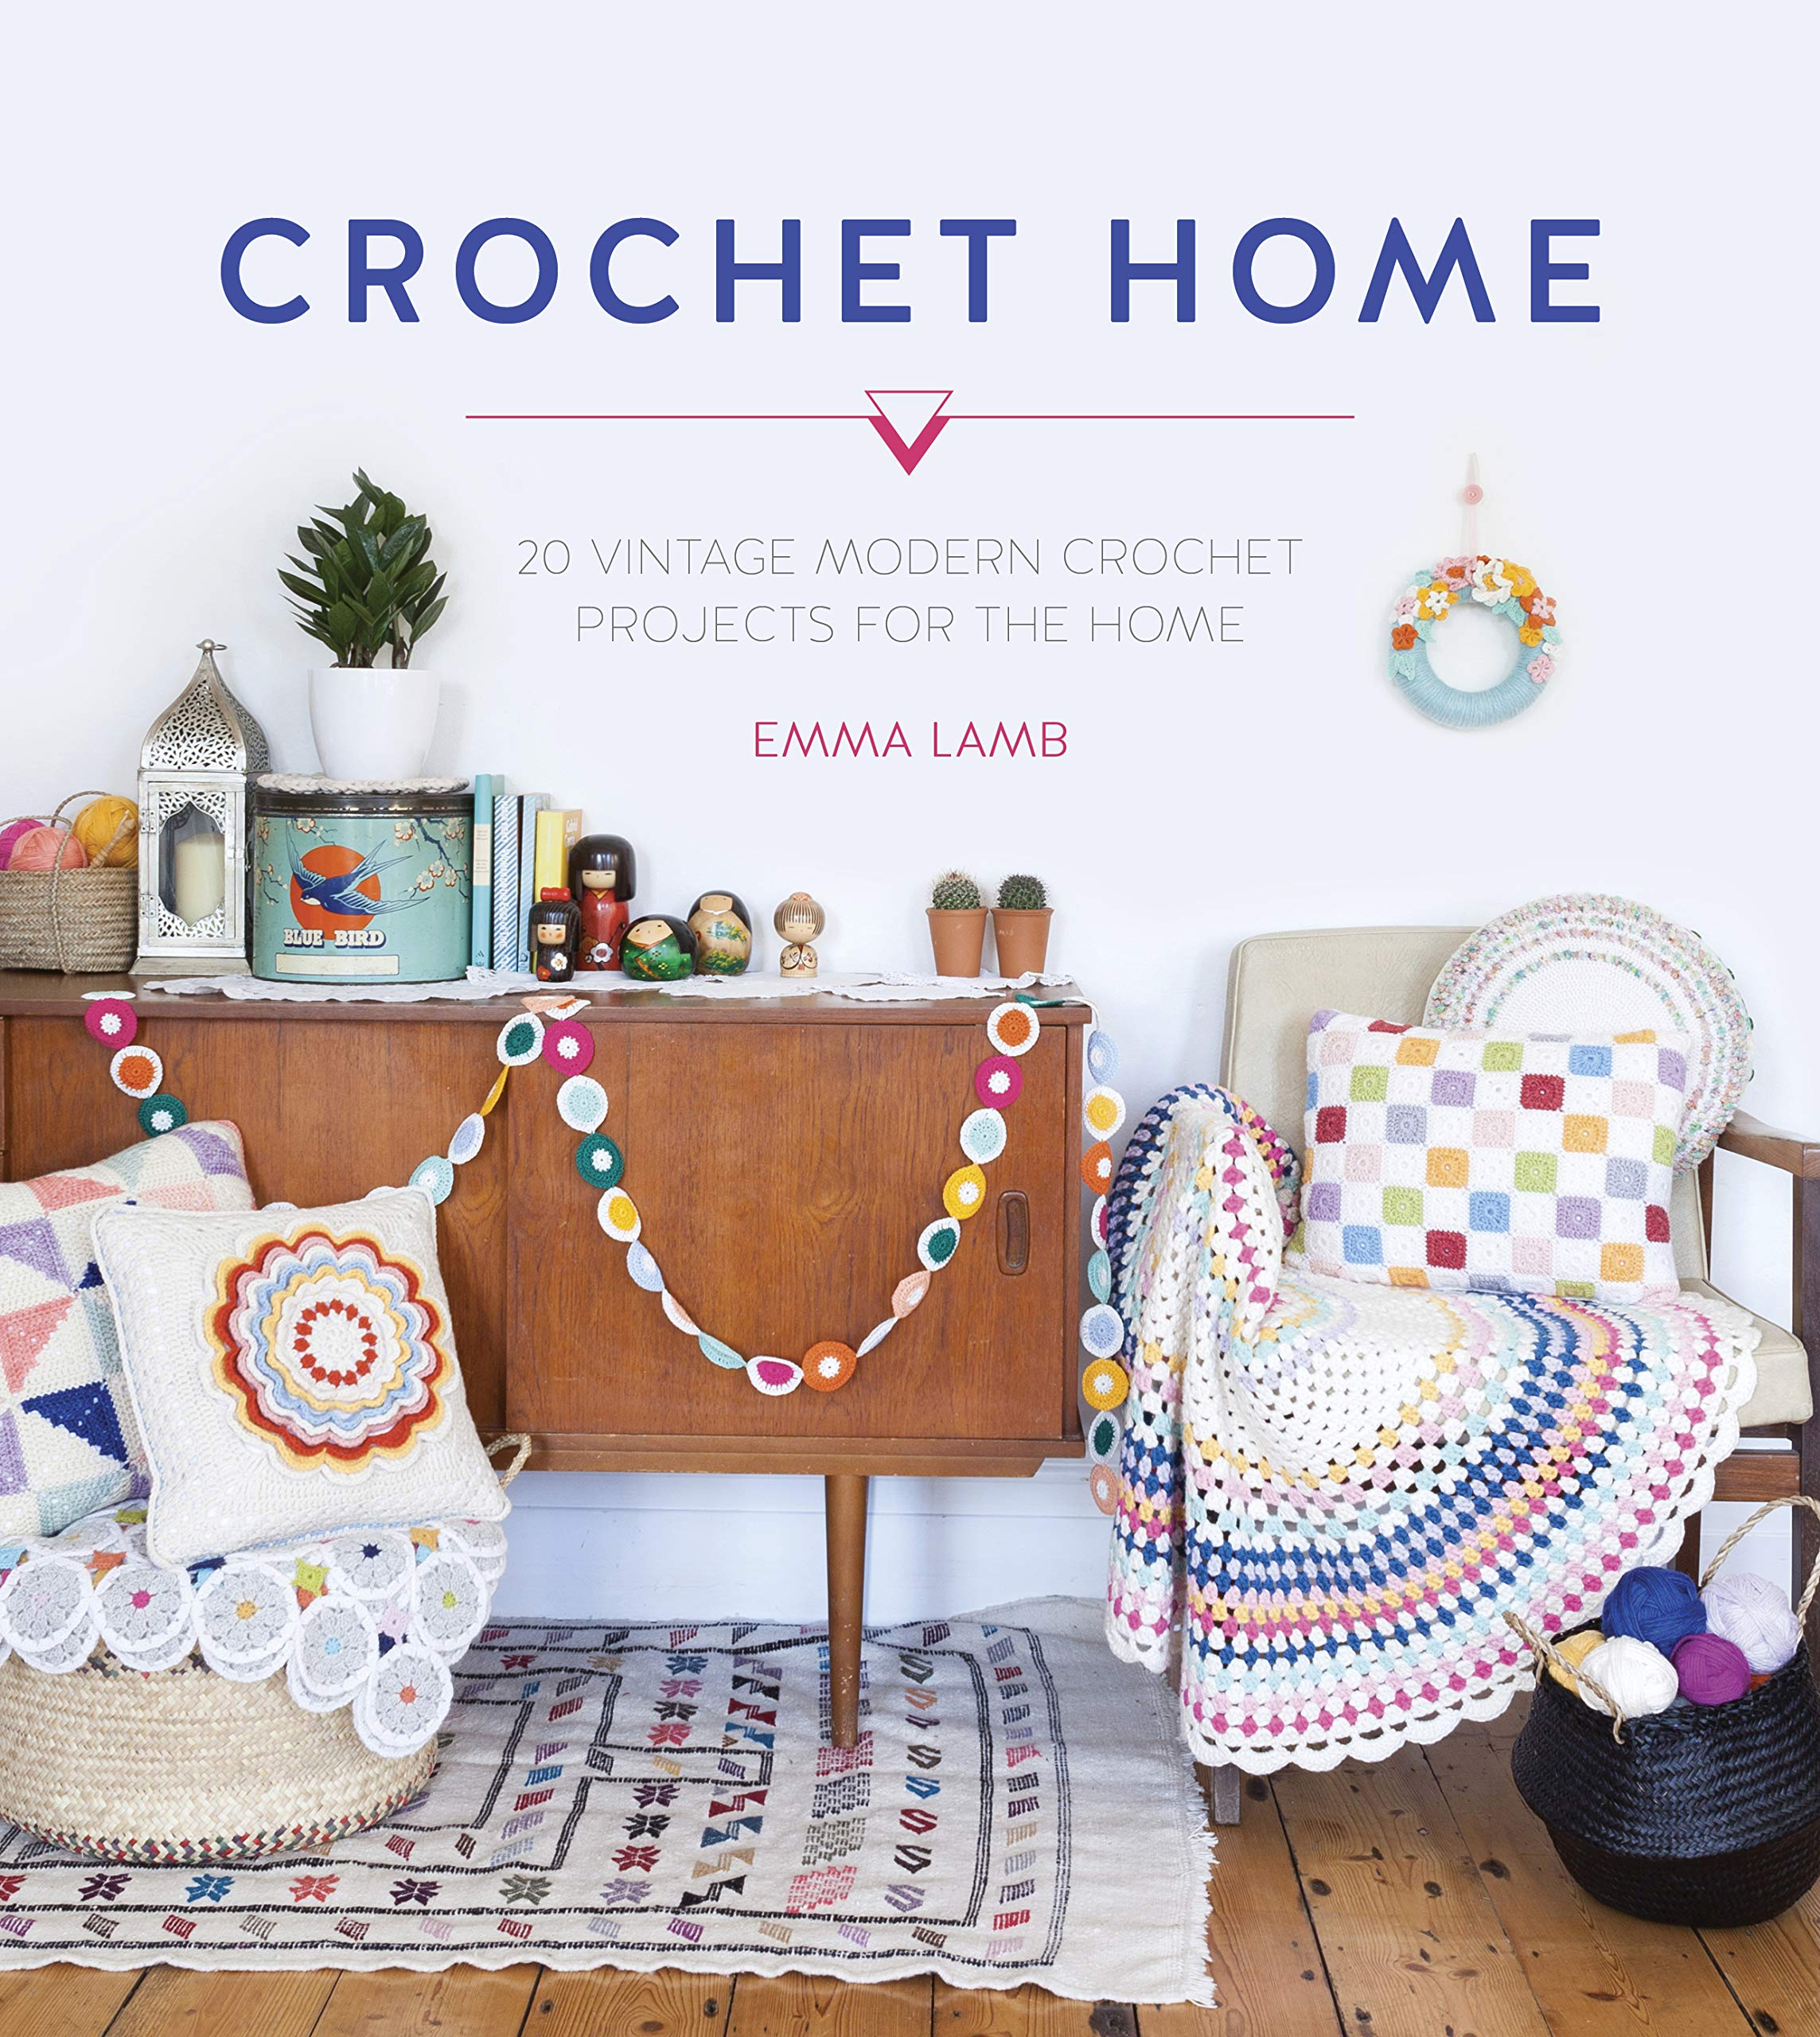 Crochet Home 20 Vintage Modern Crochet Projects For The Home Lamb Emma 0806488424501 Amazon Com Books